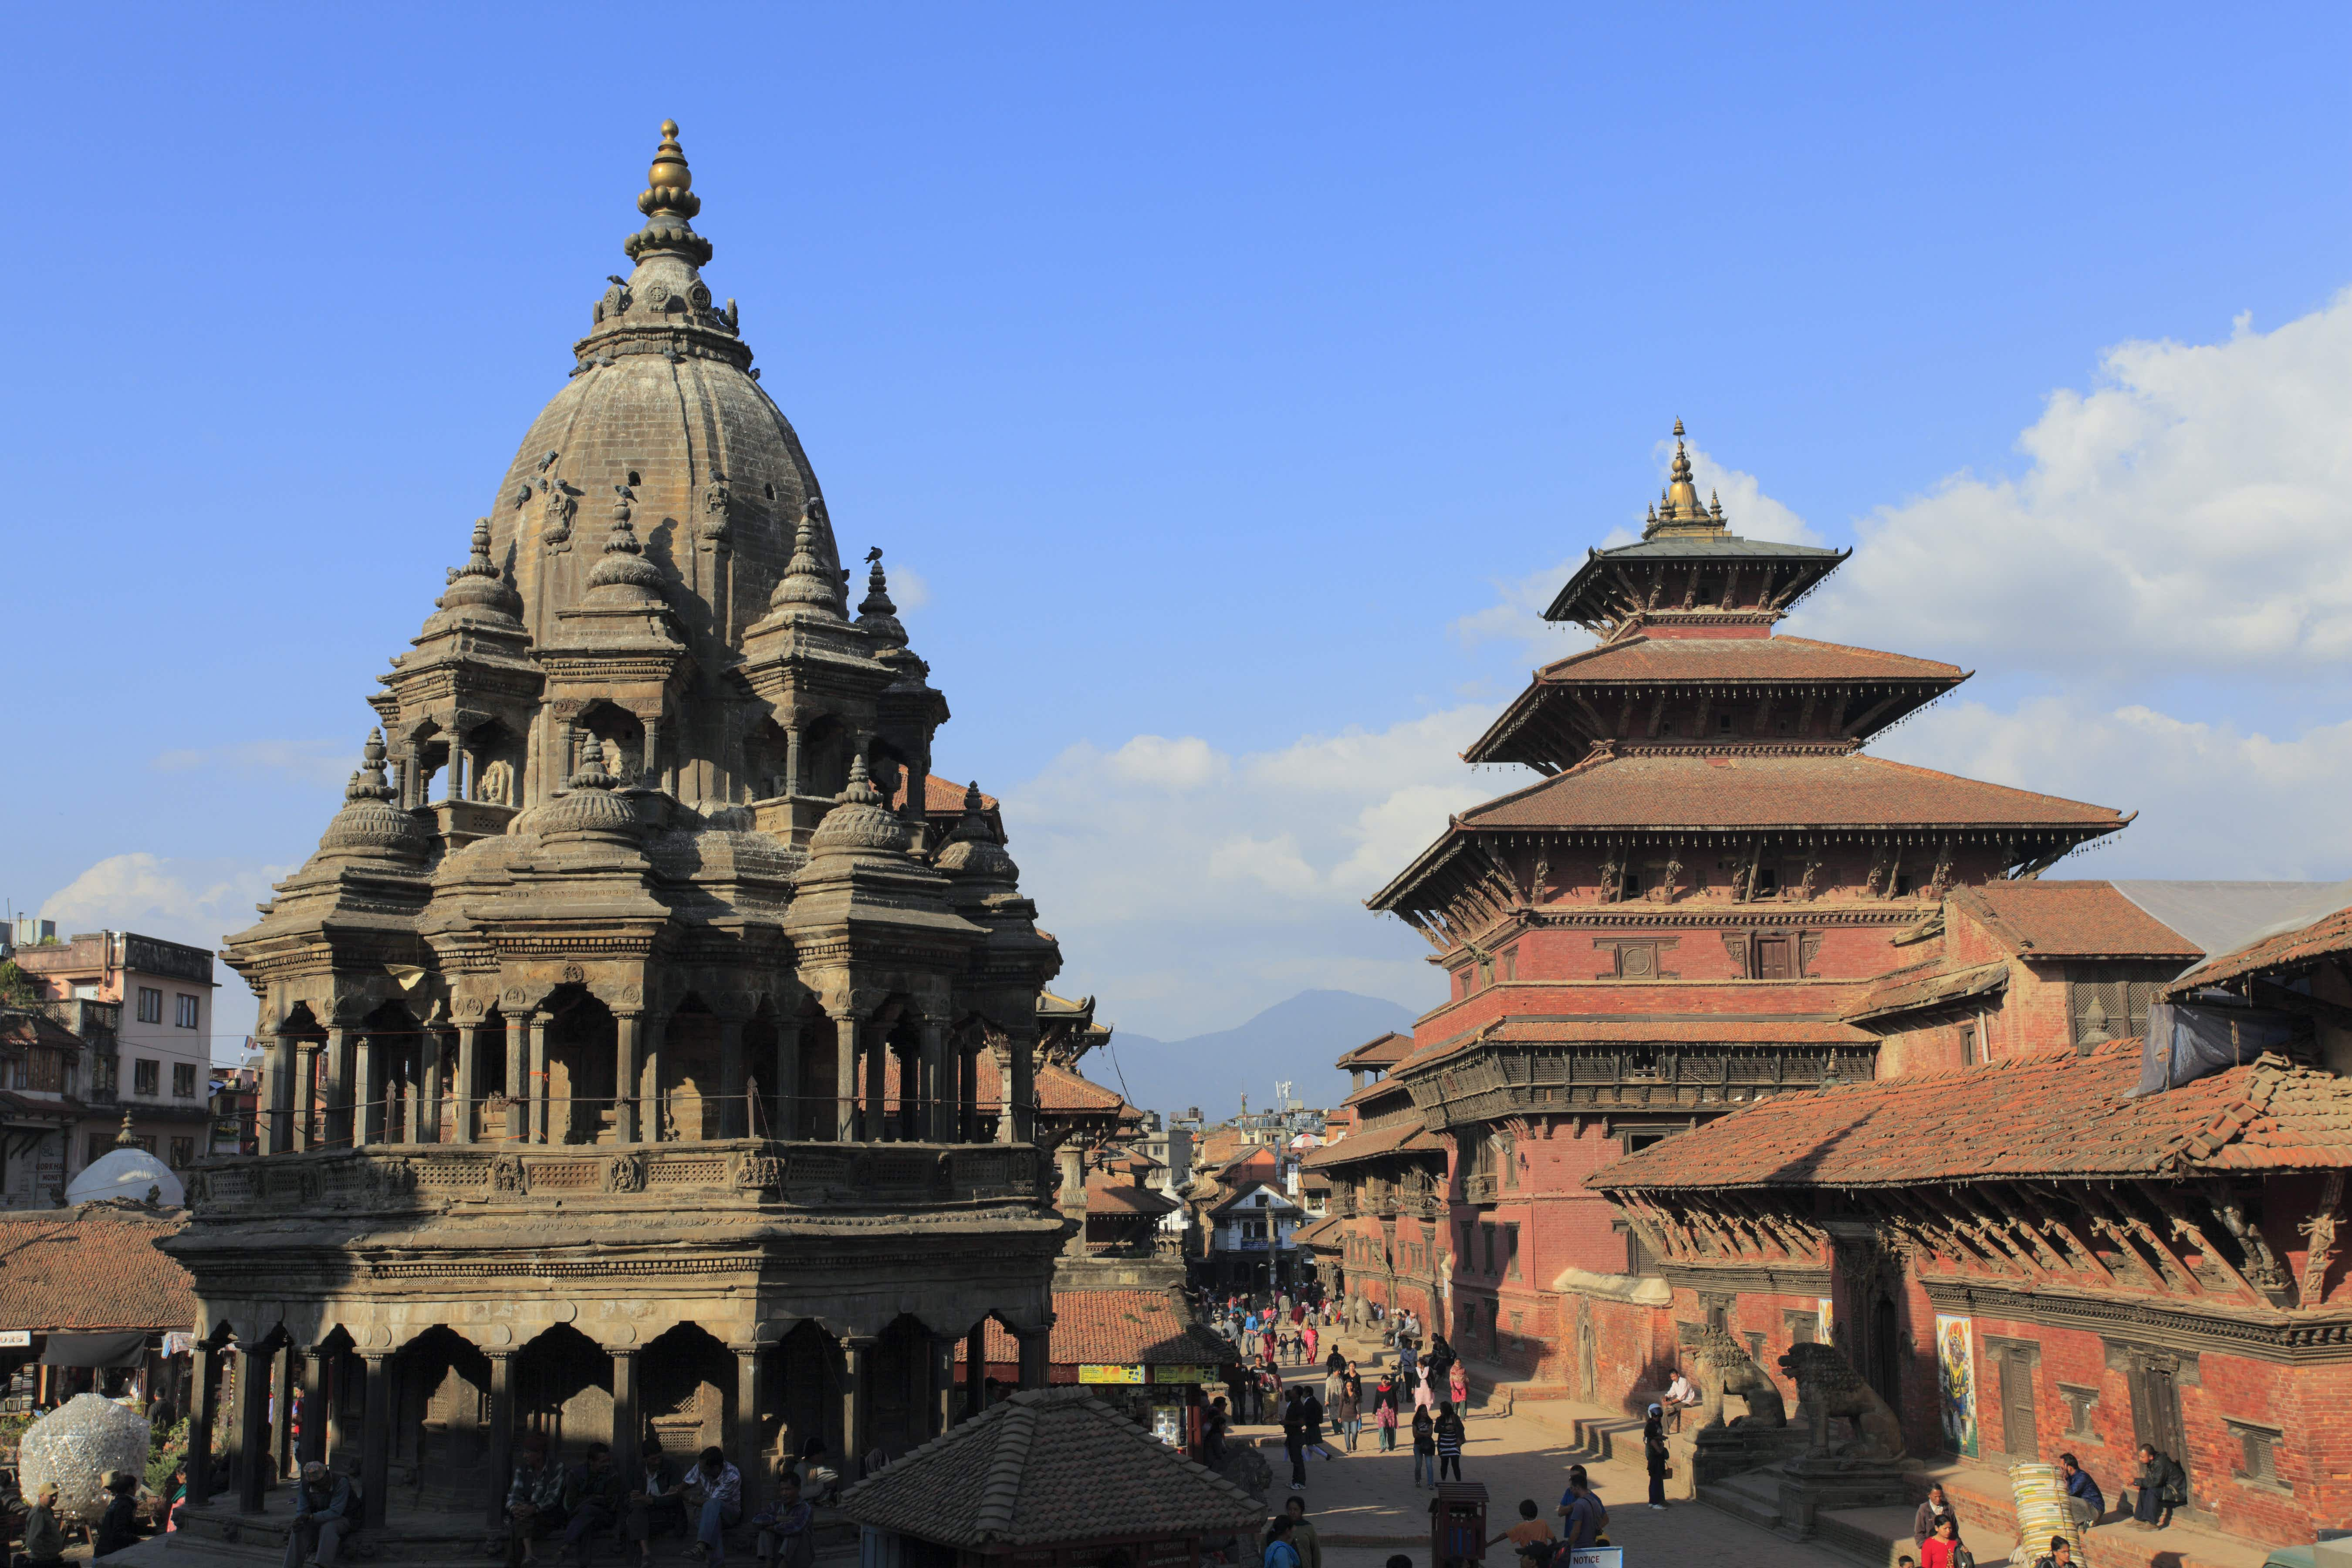 Nepal recovers as tourism numbers climb above pre-earthquake levels